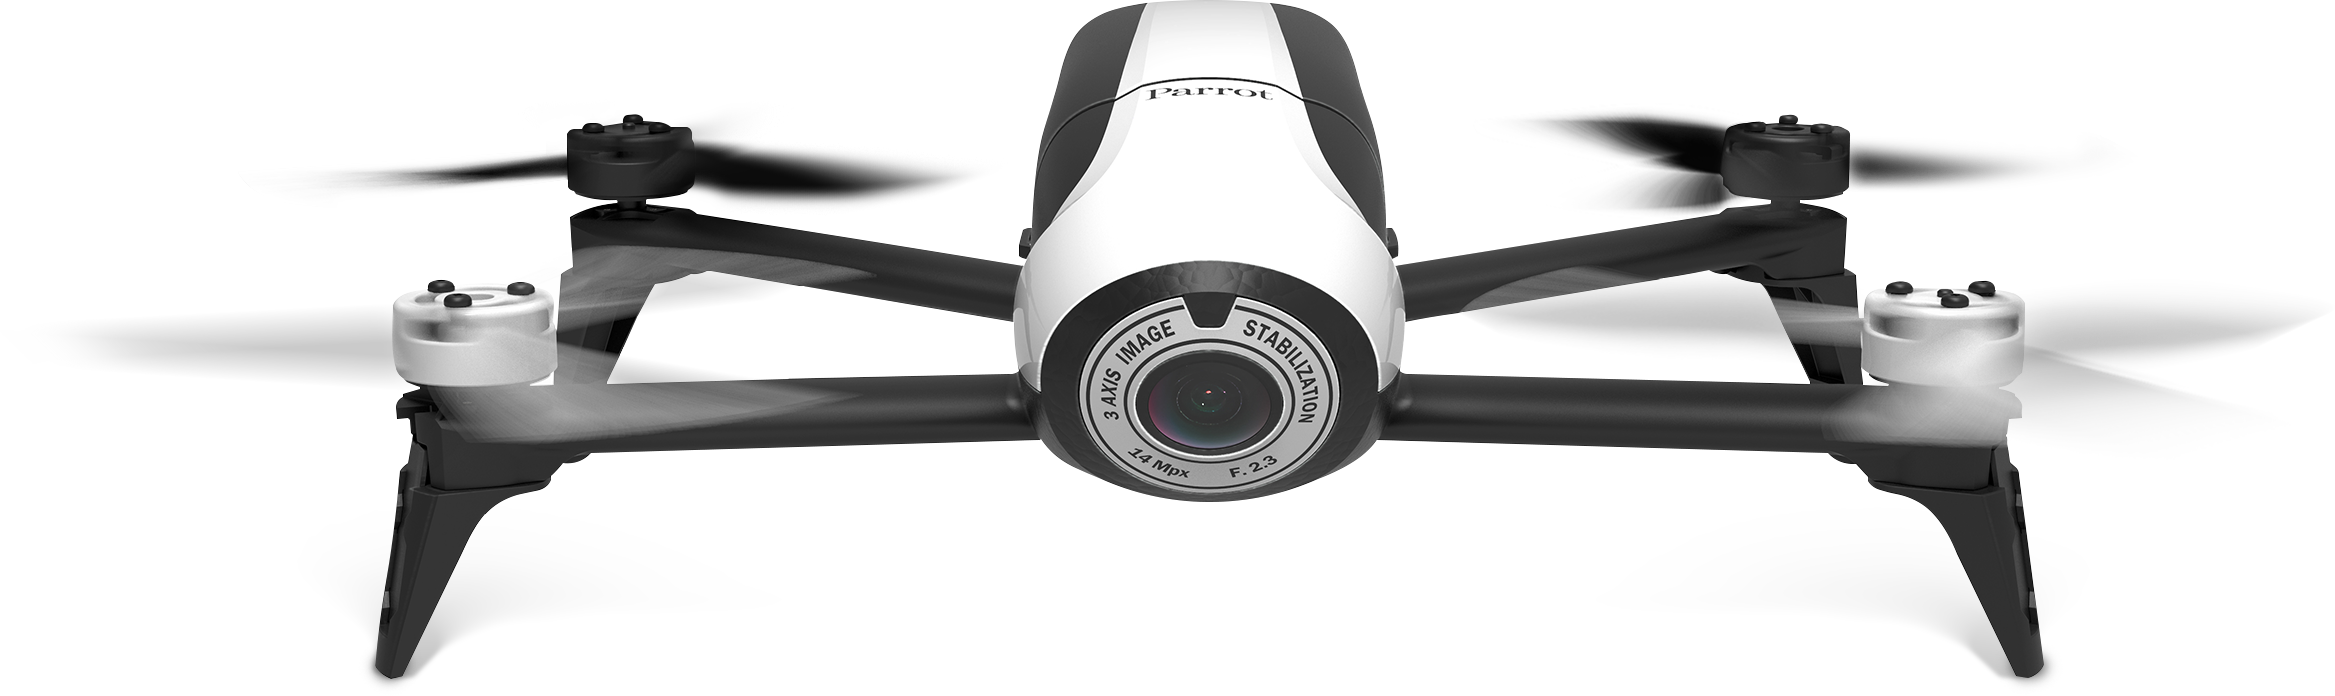 Front view of Parrot Bebop Drone 2